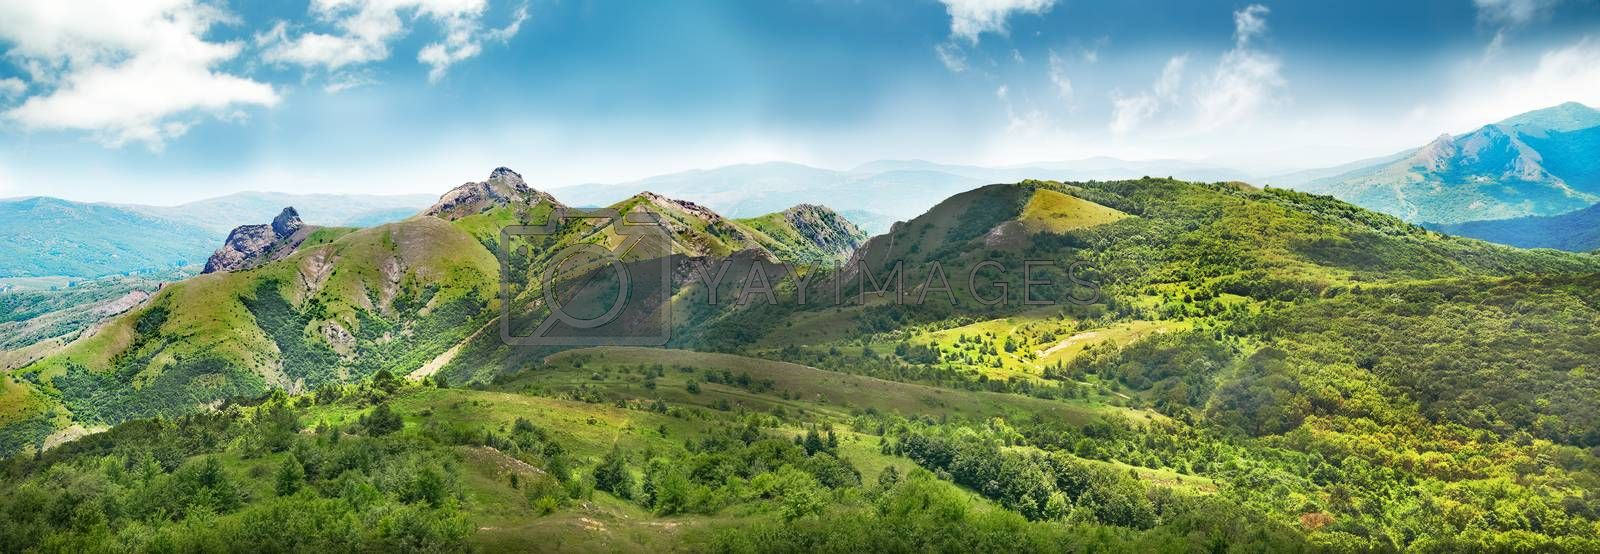 Green mountains covered with forest on the blue sky background. Panorama